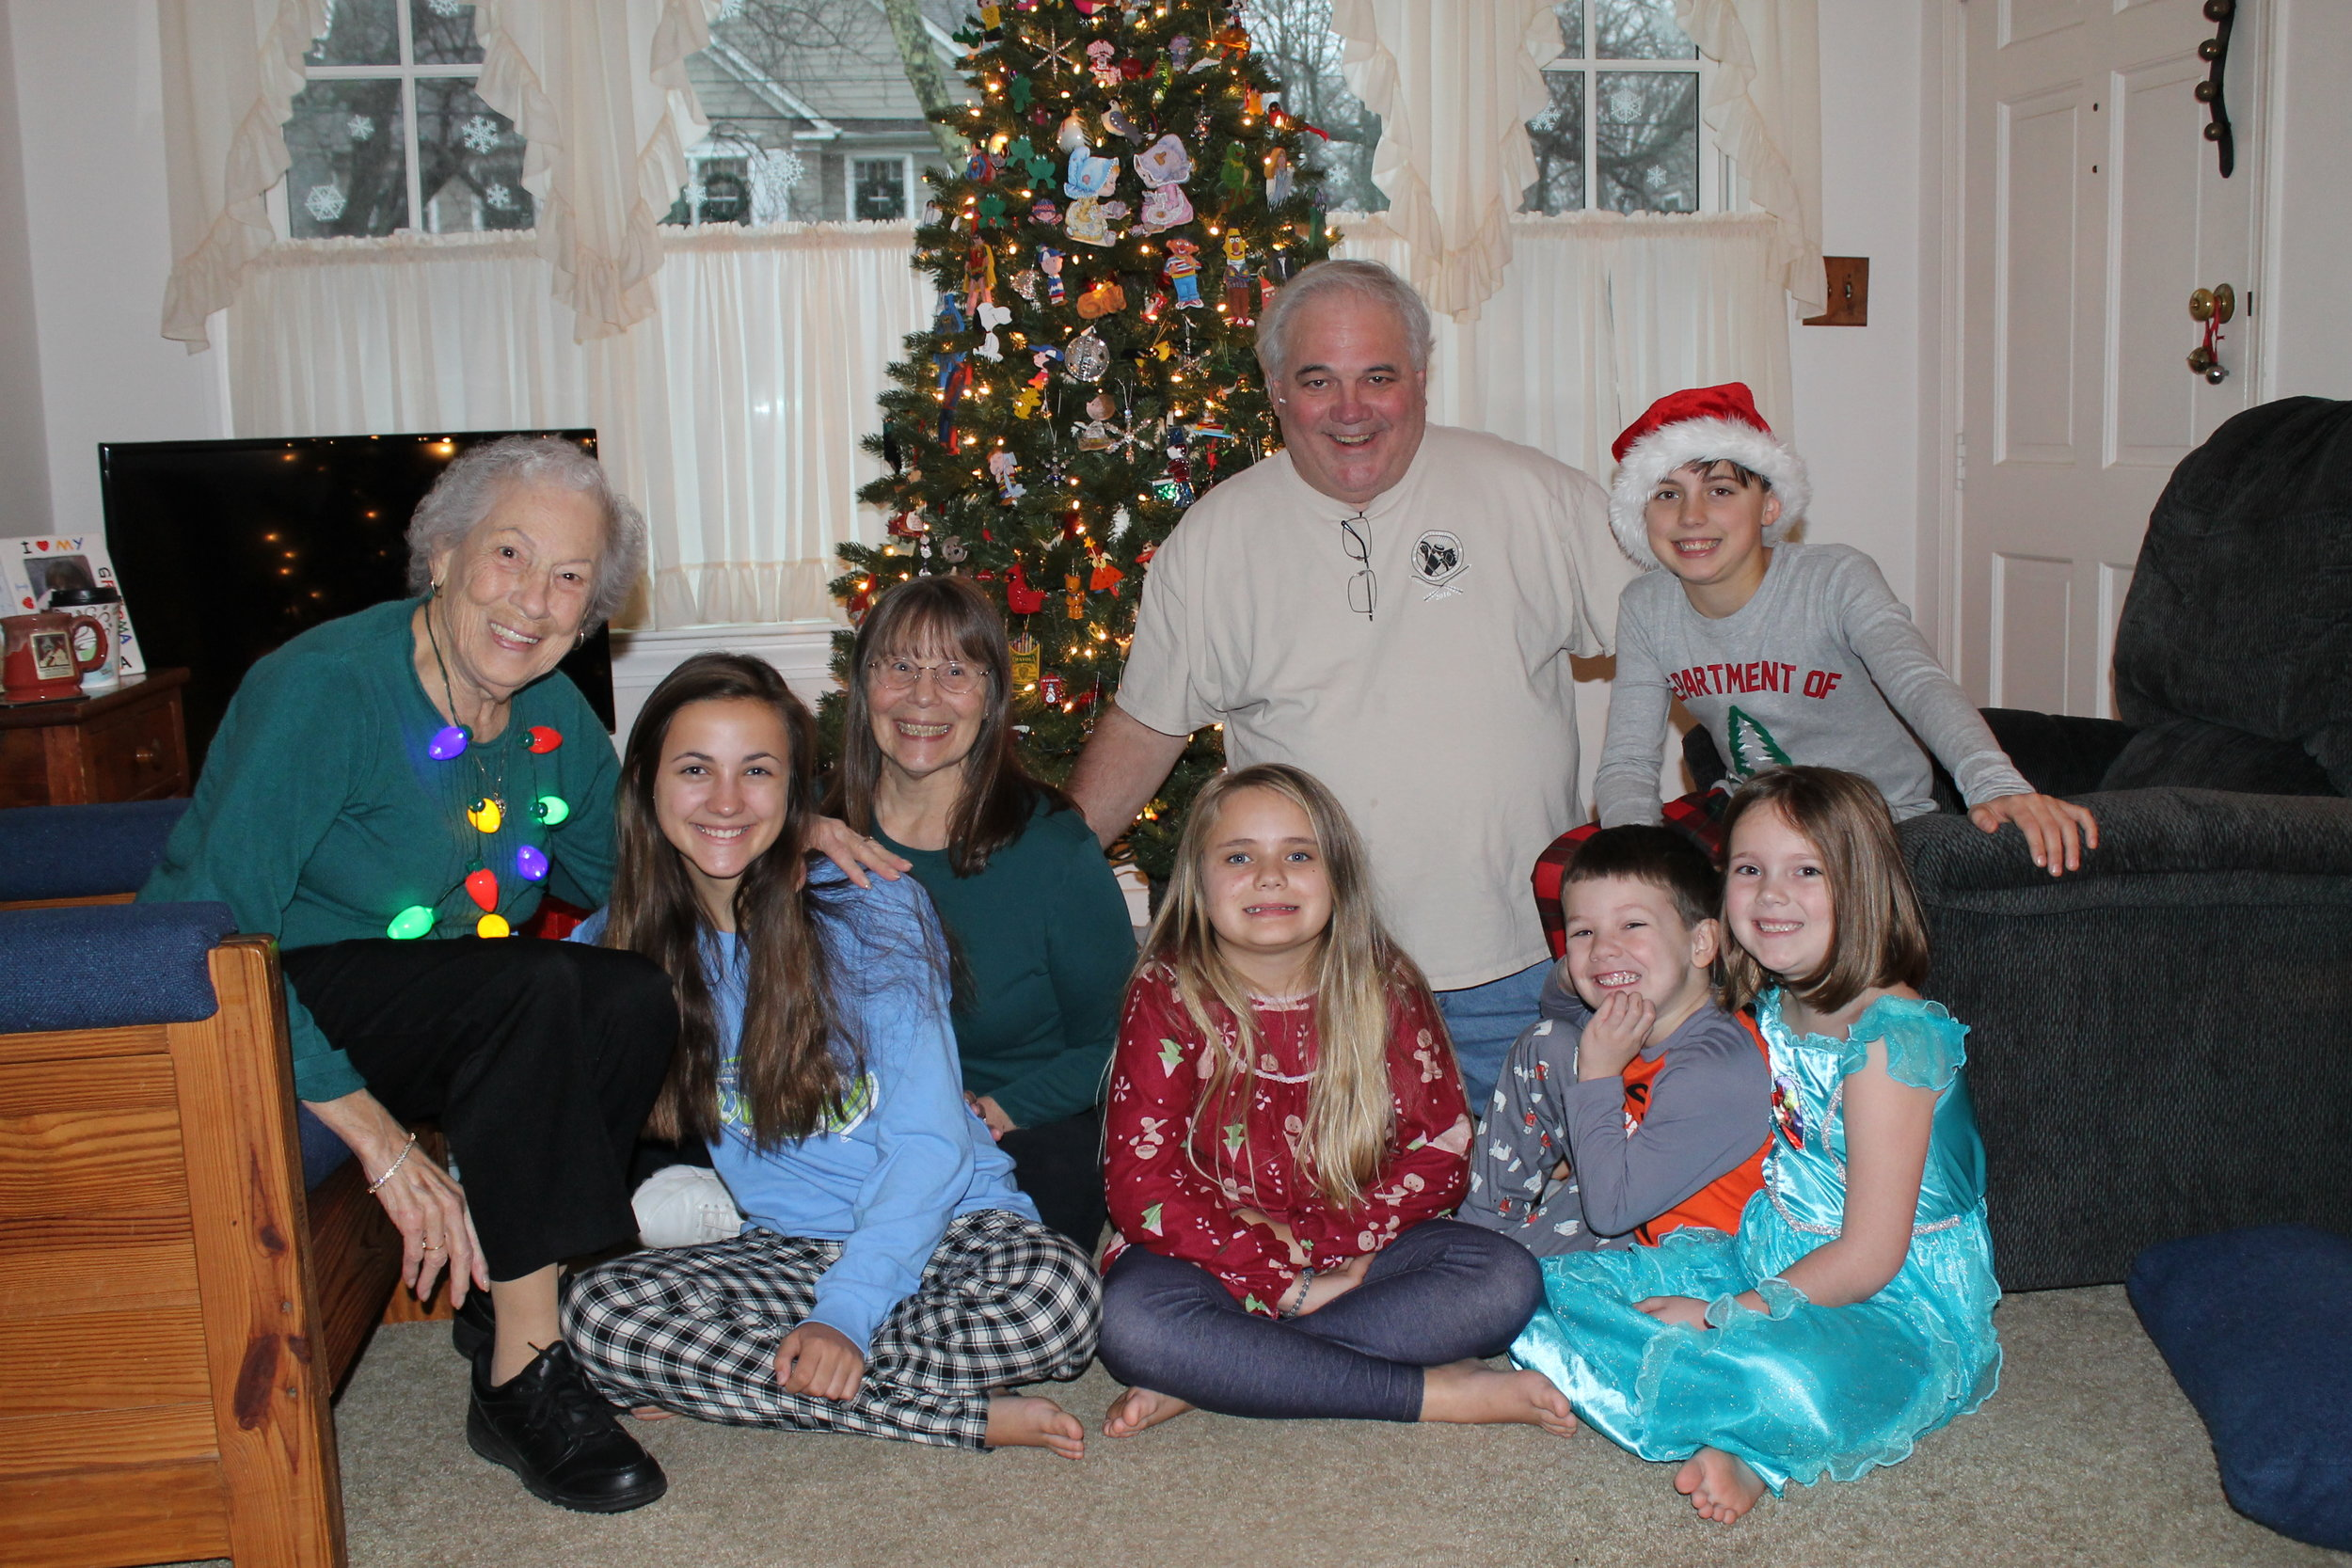 Our 2016 Christmas Eve Grandparent/Great-Grandmom Cousin Picture